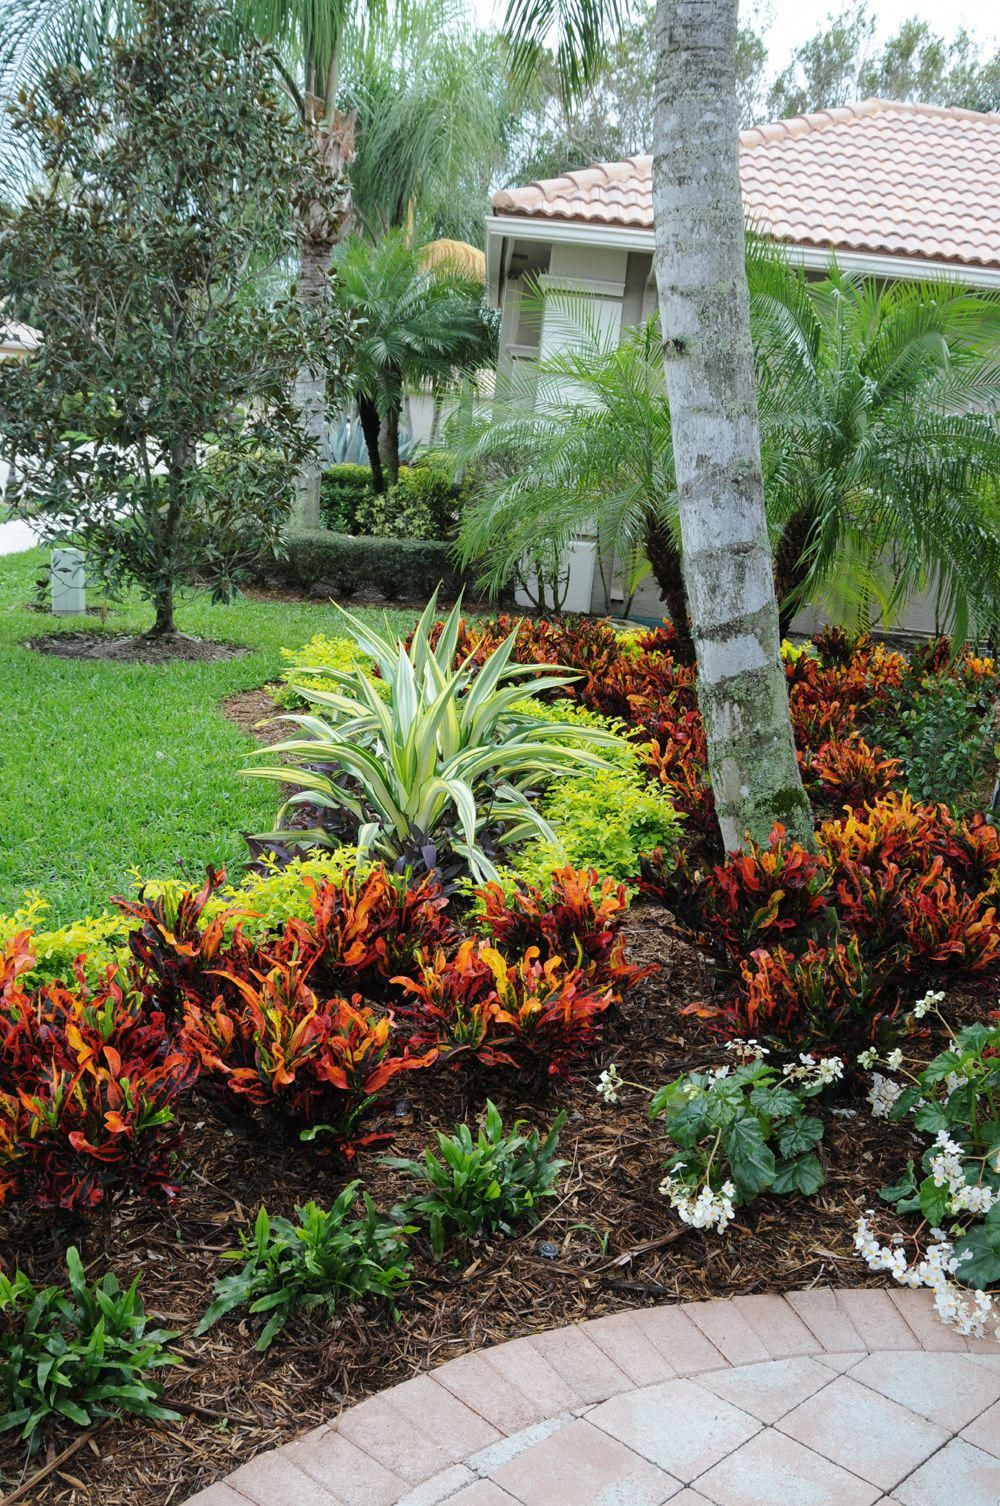 designs for garden landscaping on front yard landscaping ideas id=74343